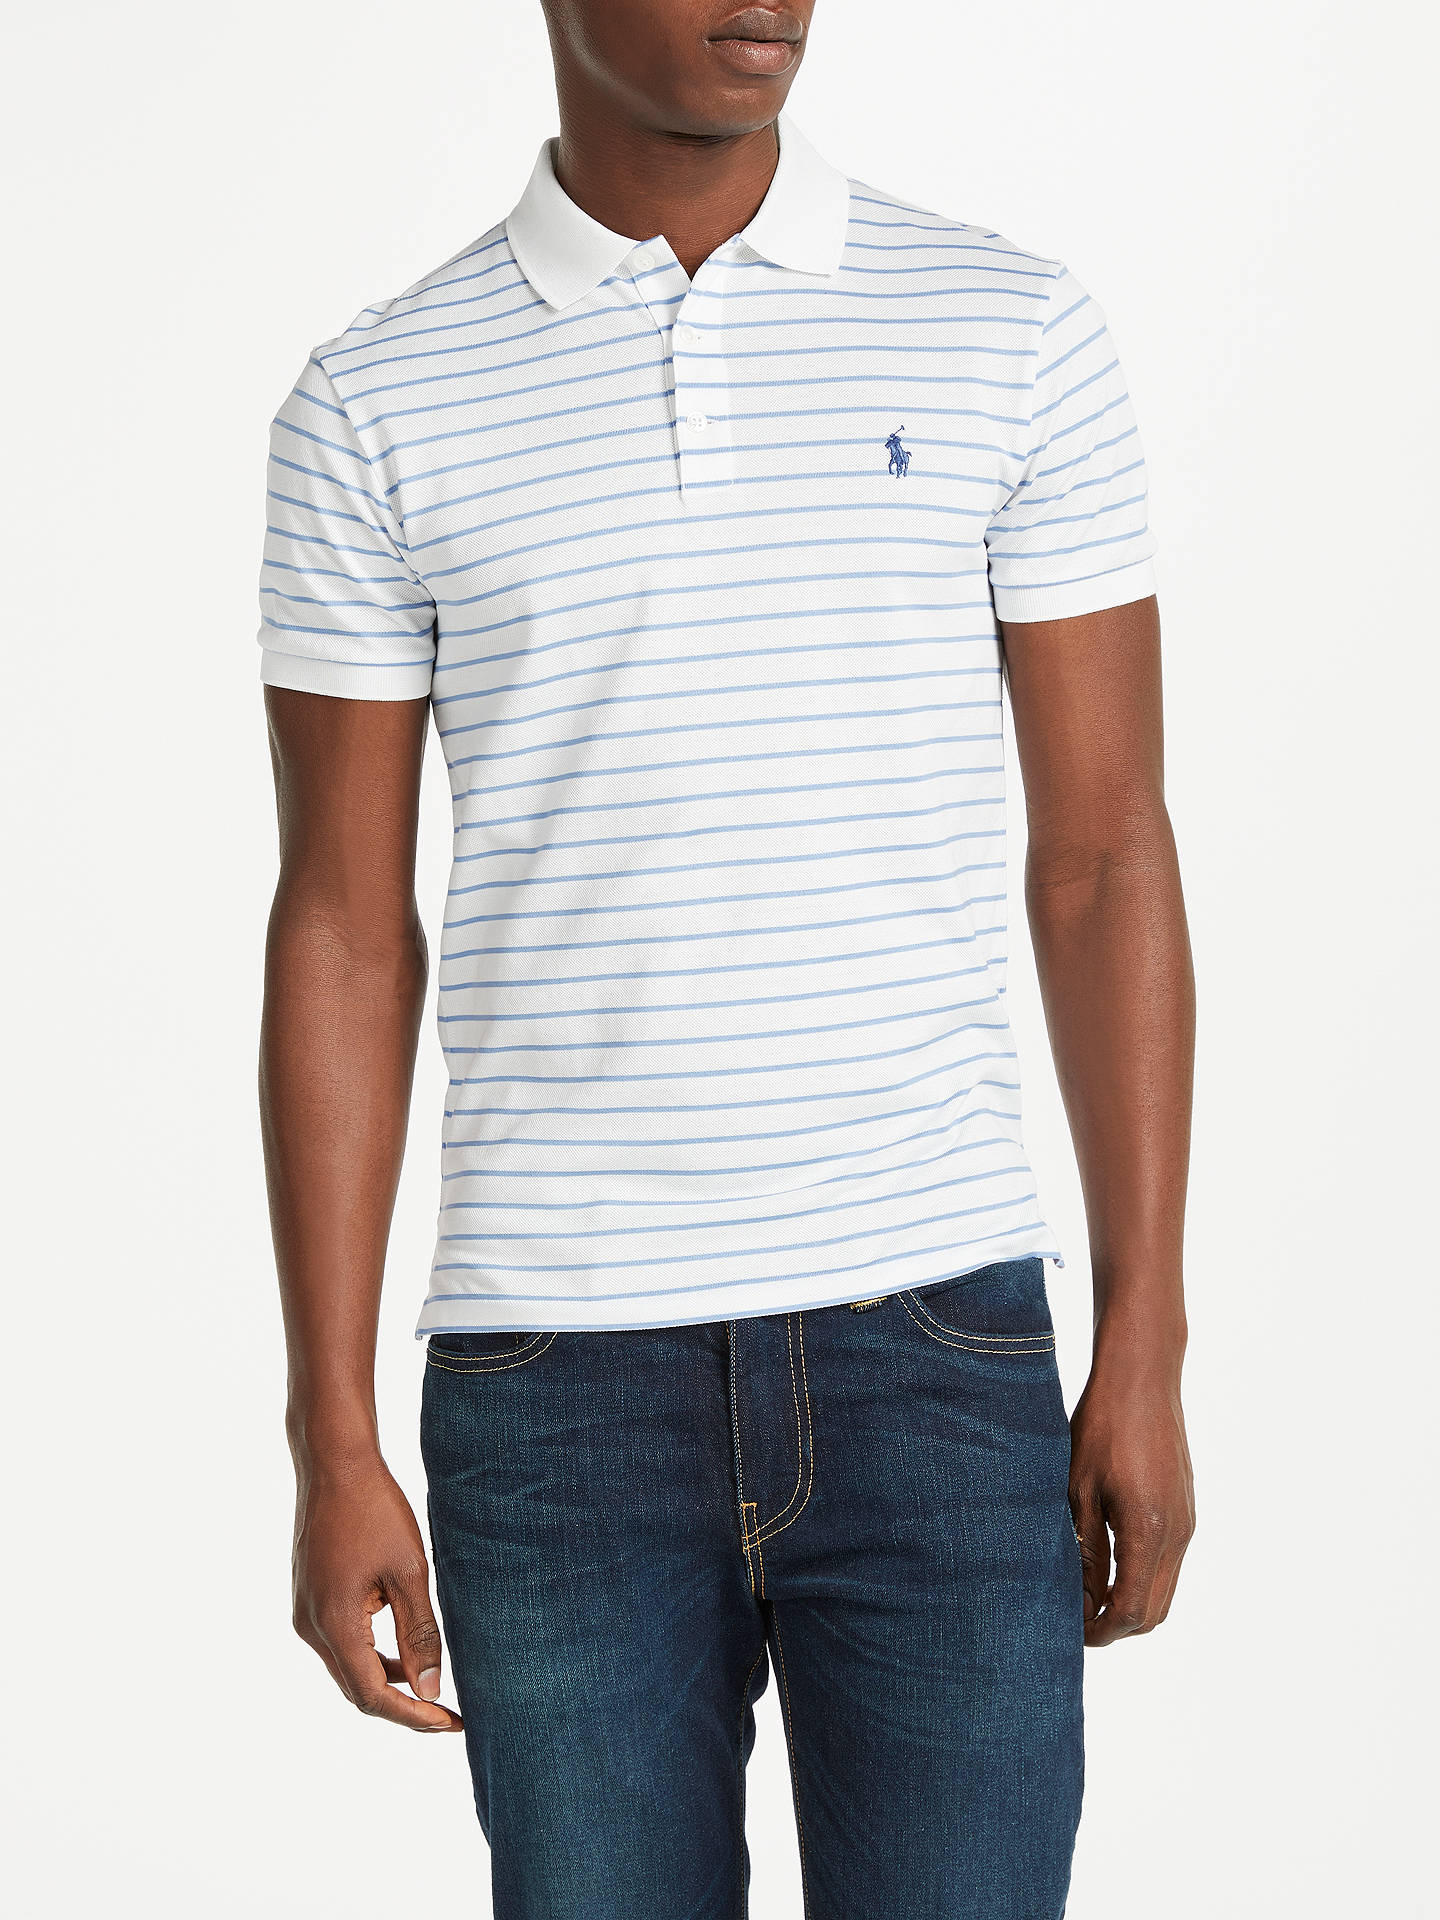 c6dc85b094329 Buy Polo Ralph Lauren Slim Fit Stretch Stripe Polo Shirt